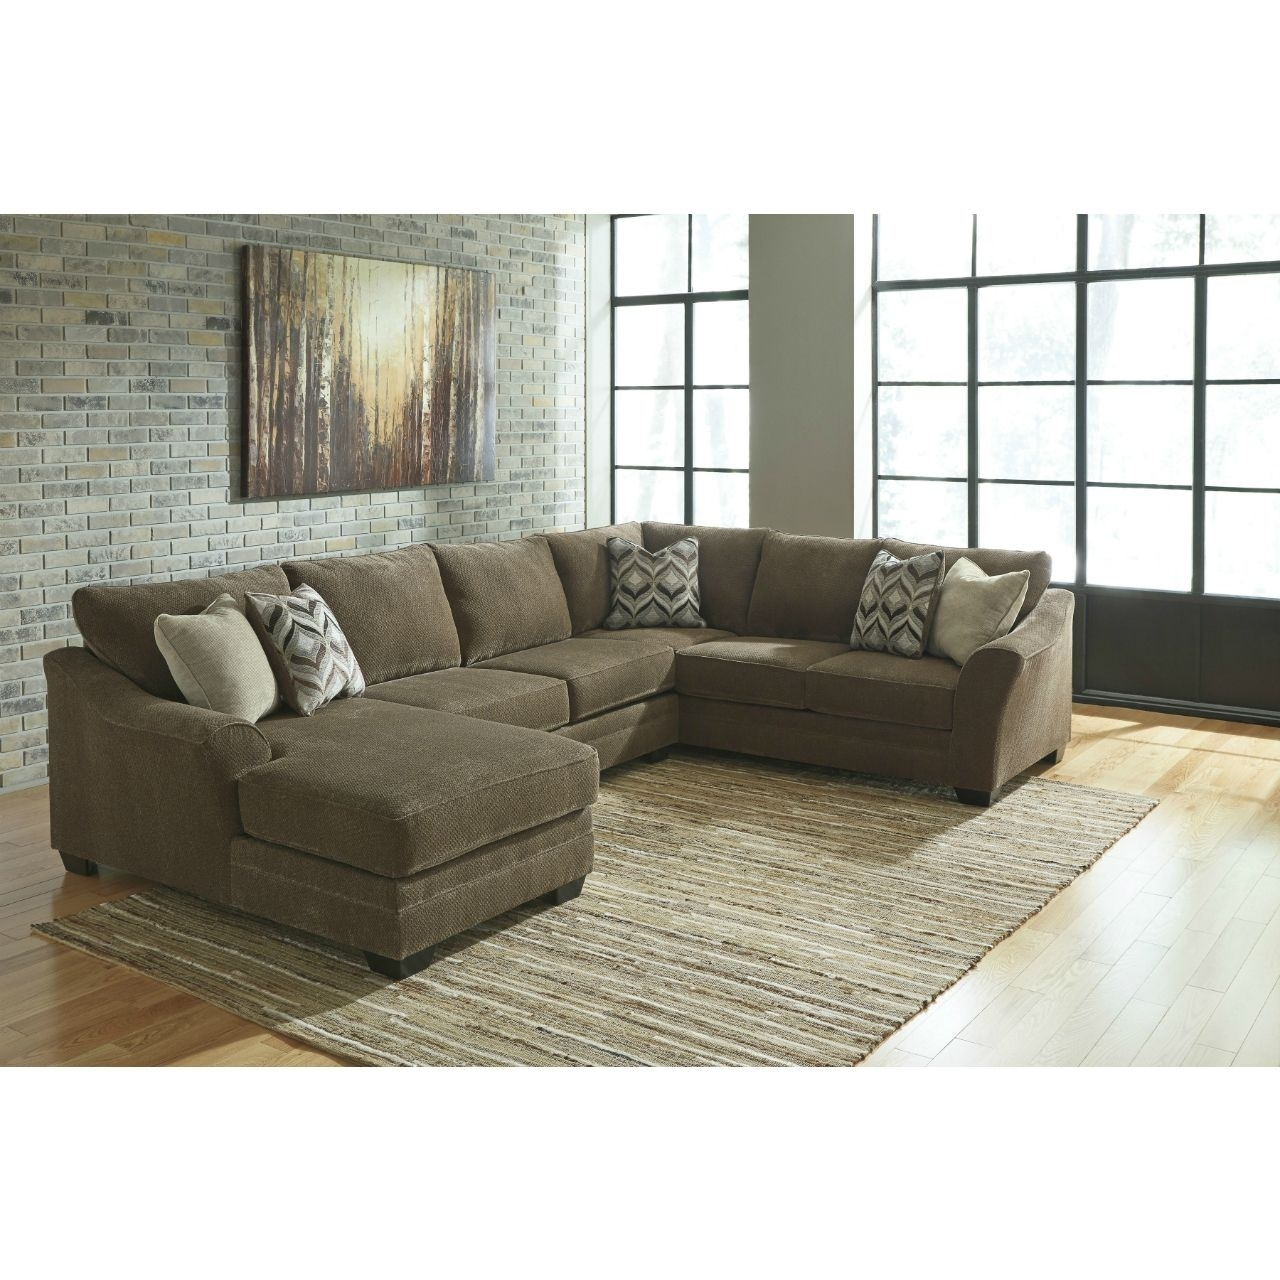 Douglas 3 Piece Sectional   For The Home   Pinterest   Room, Living Within Benton 4 Piece Sectionals (Image 10 of 25)